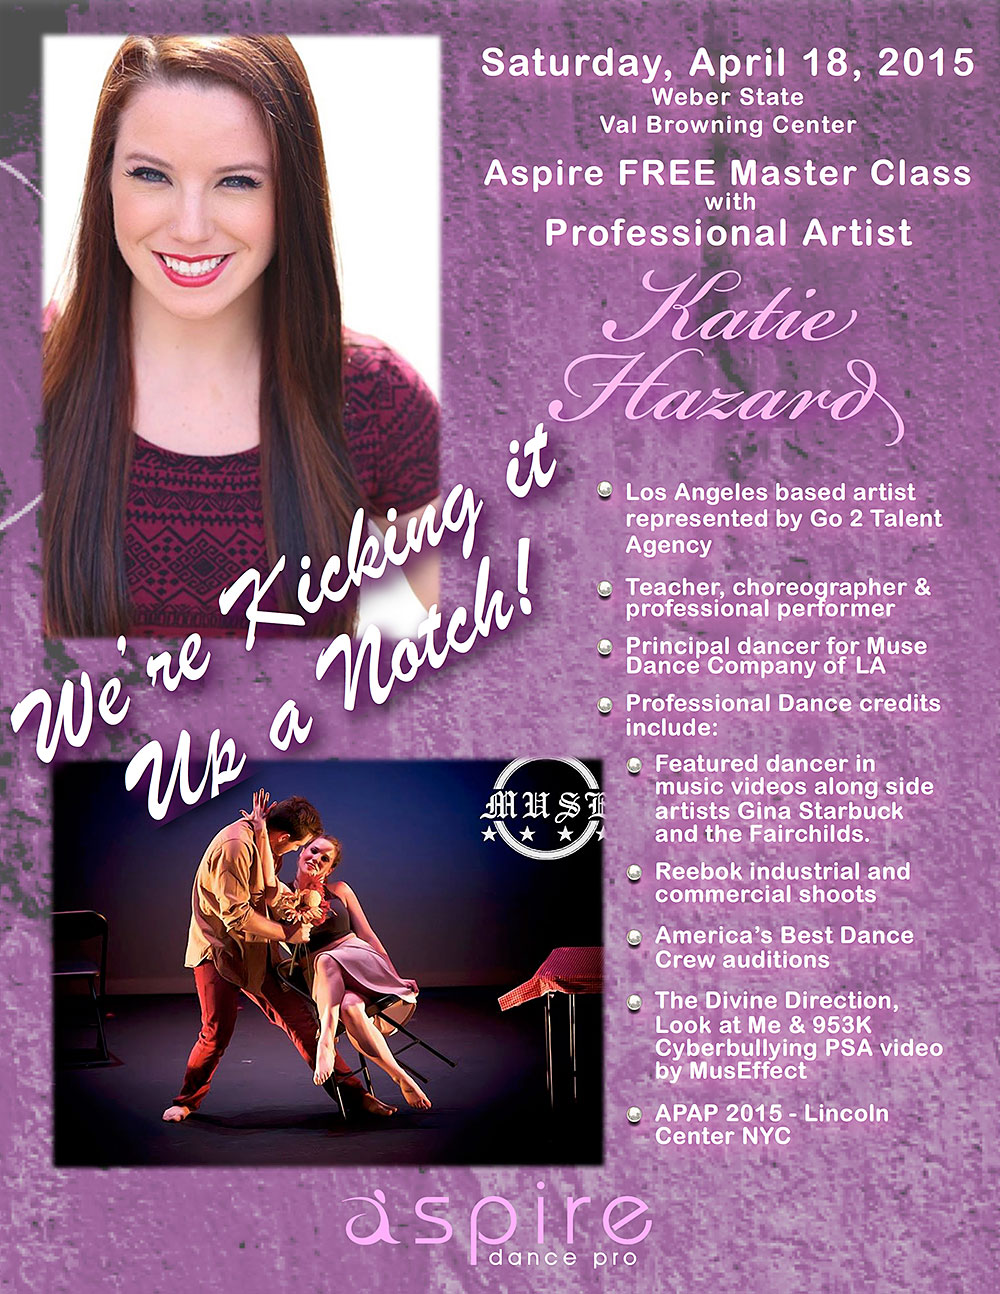 Katie Hazard - Aspire Dance Pro Competitions Masterclass Instructor